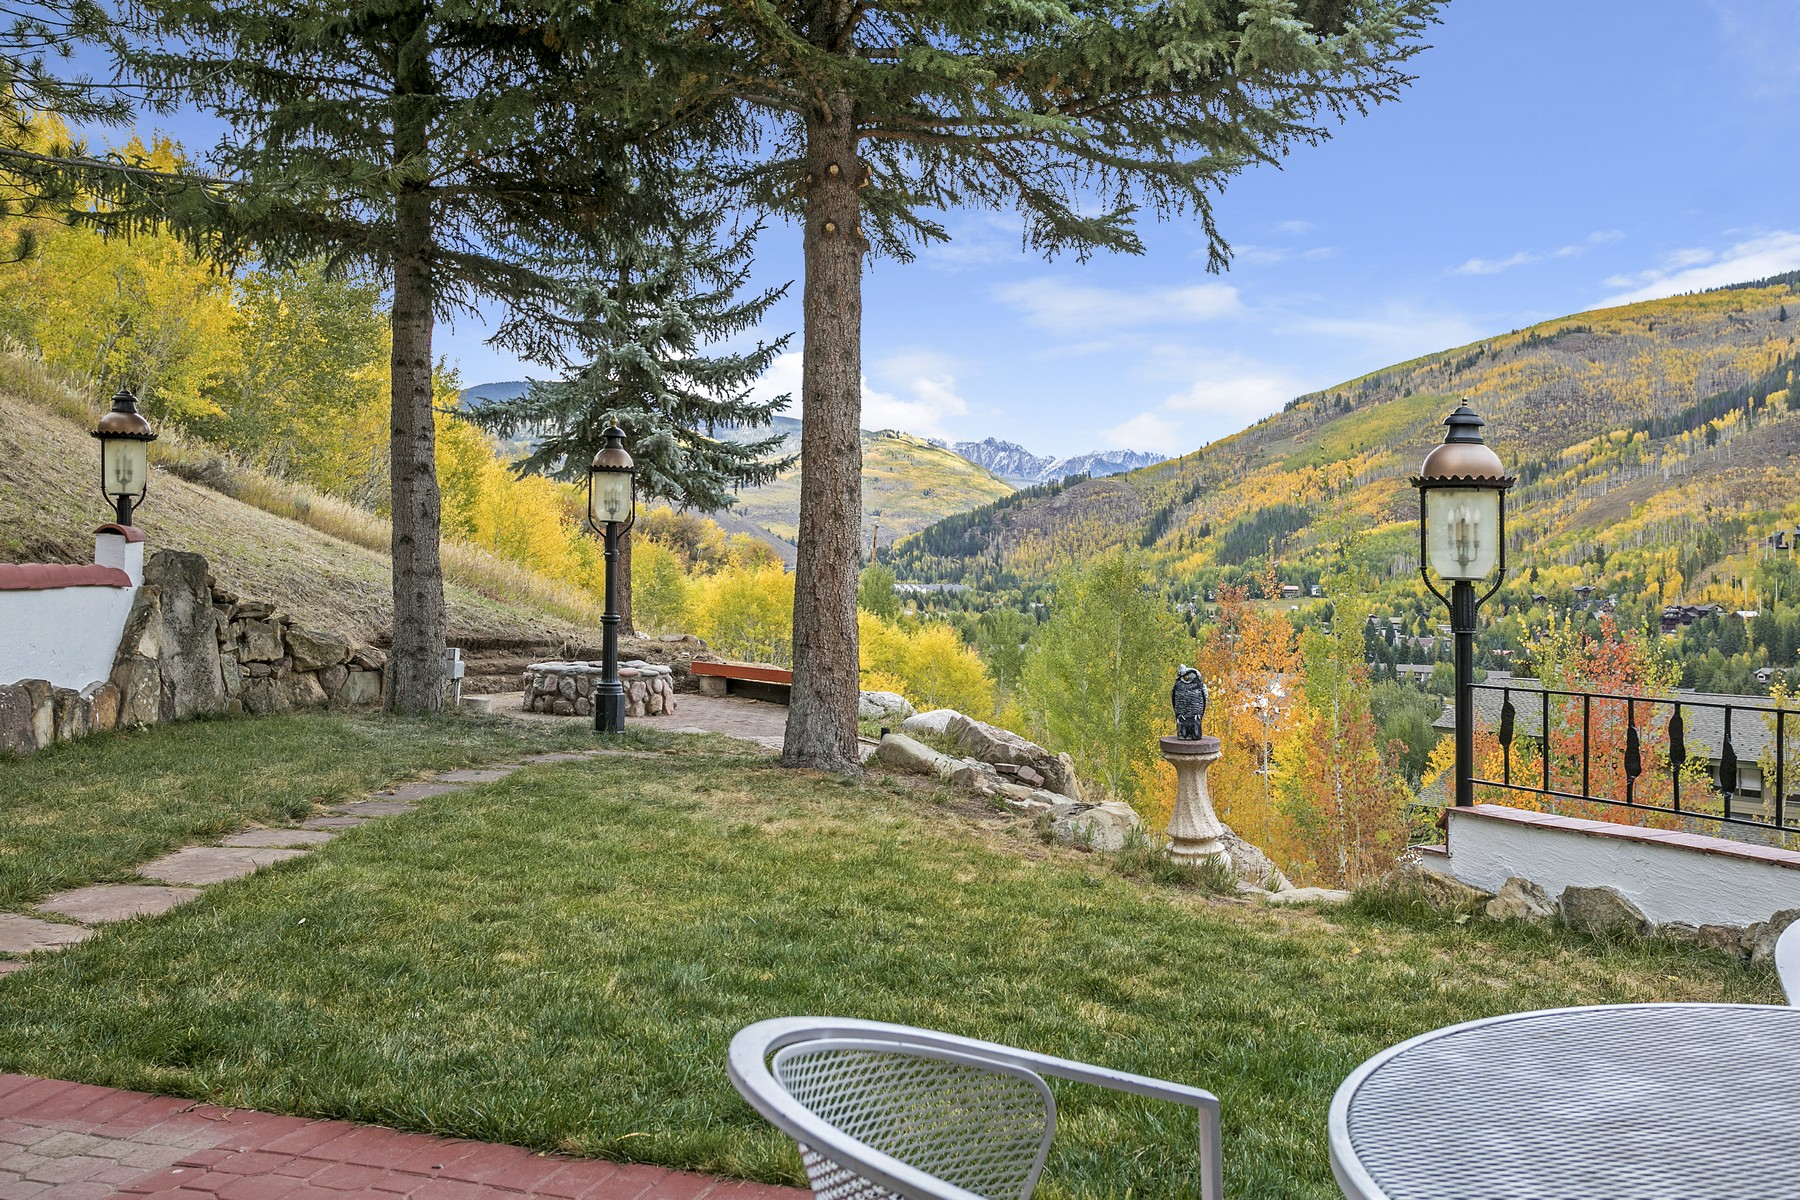 Single Family Home for Sale at Stunning Views of Vail Mountain 2317 Garmisch Dr, Vail, Colorado, 81657 United States